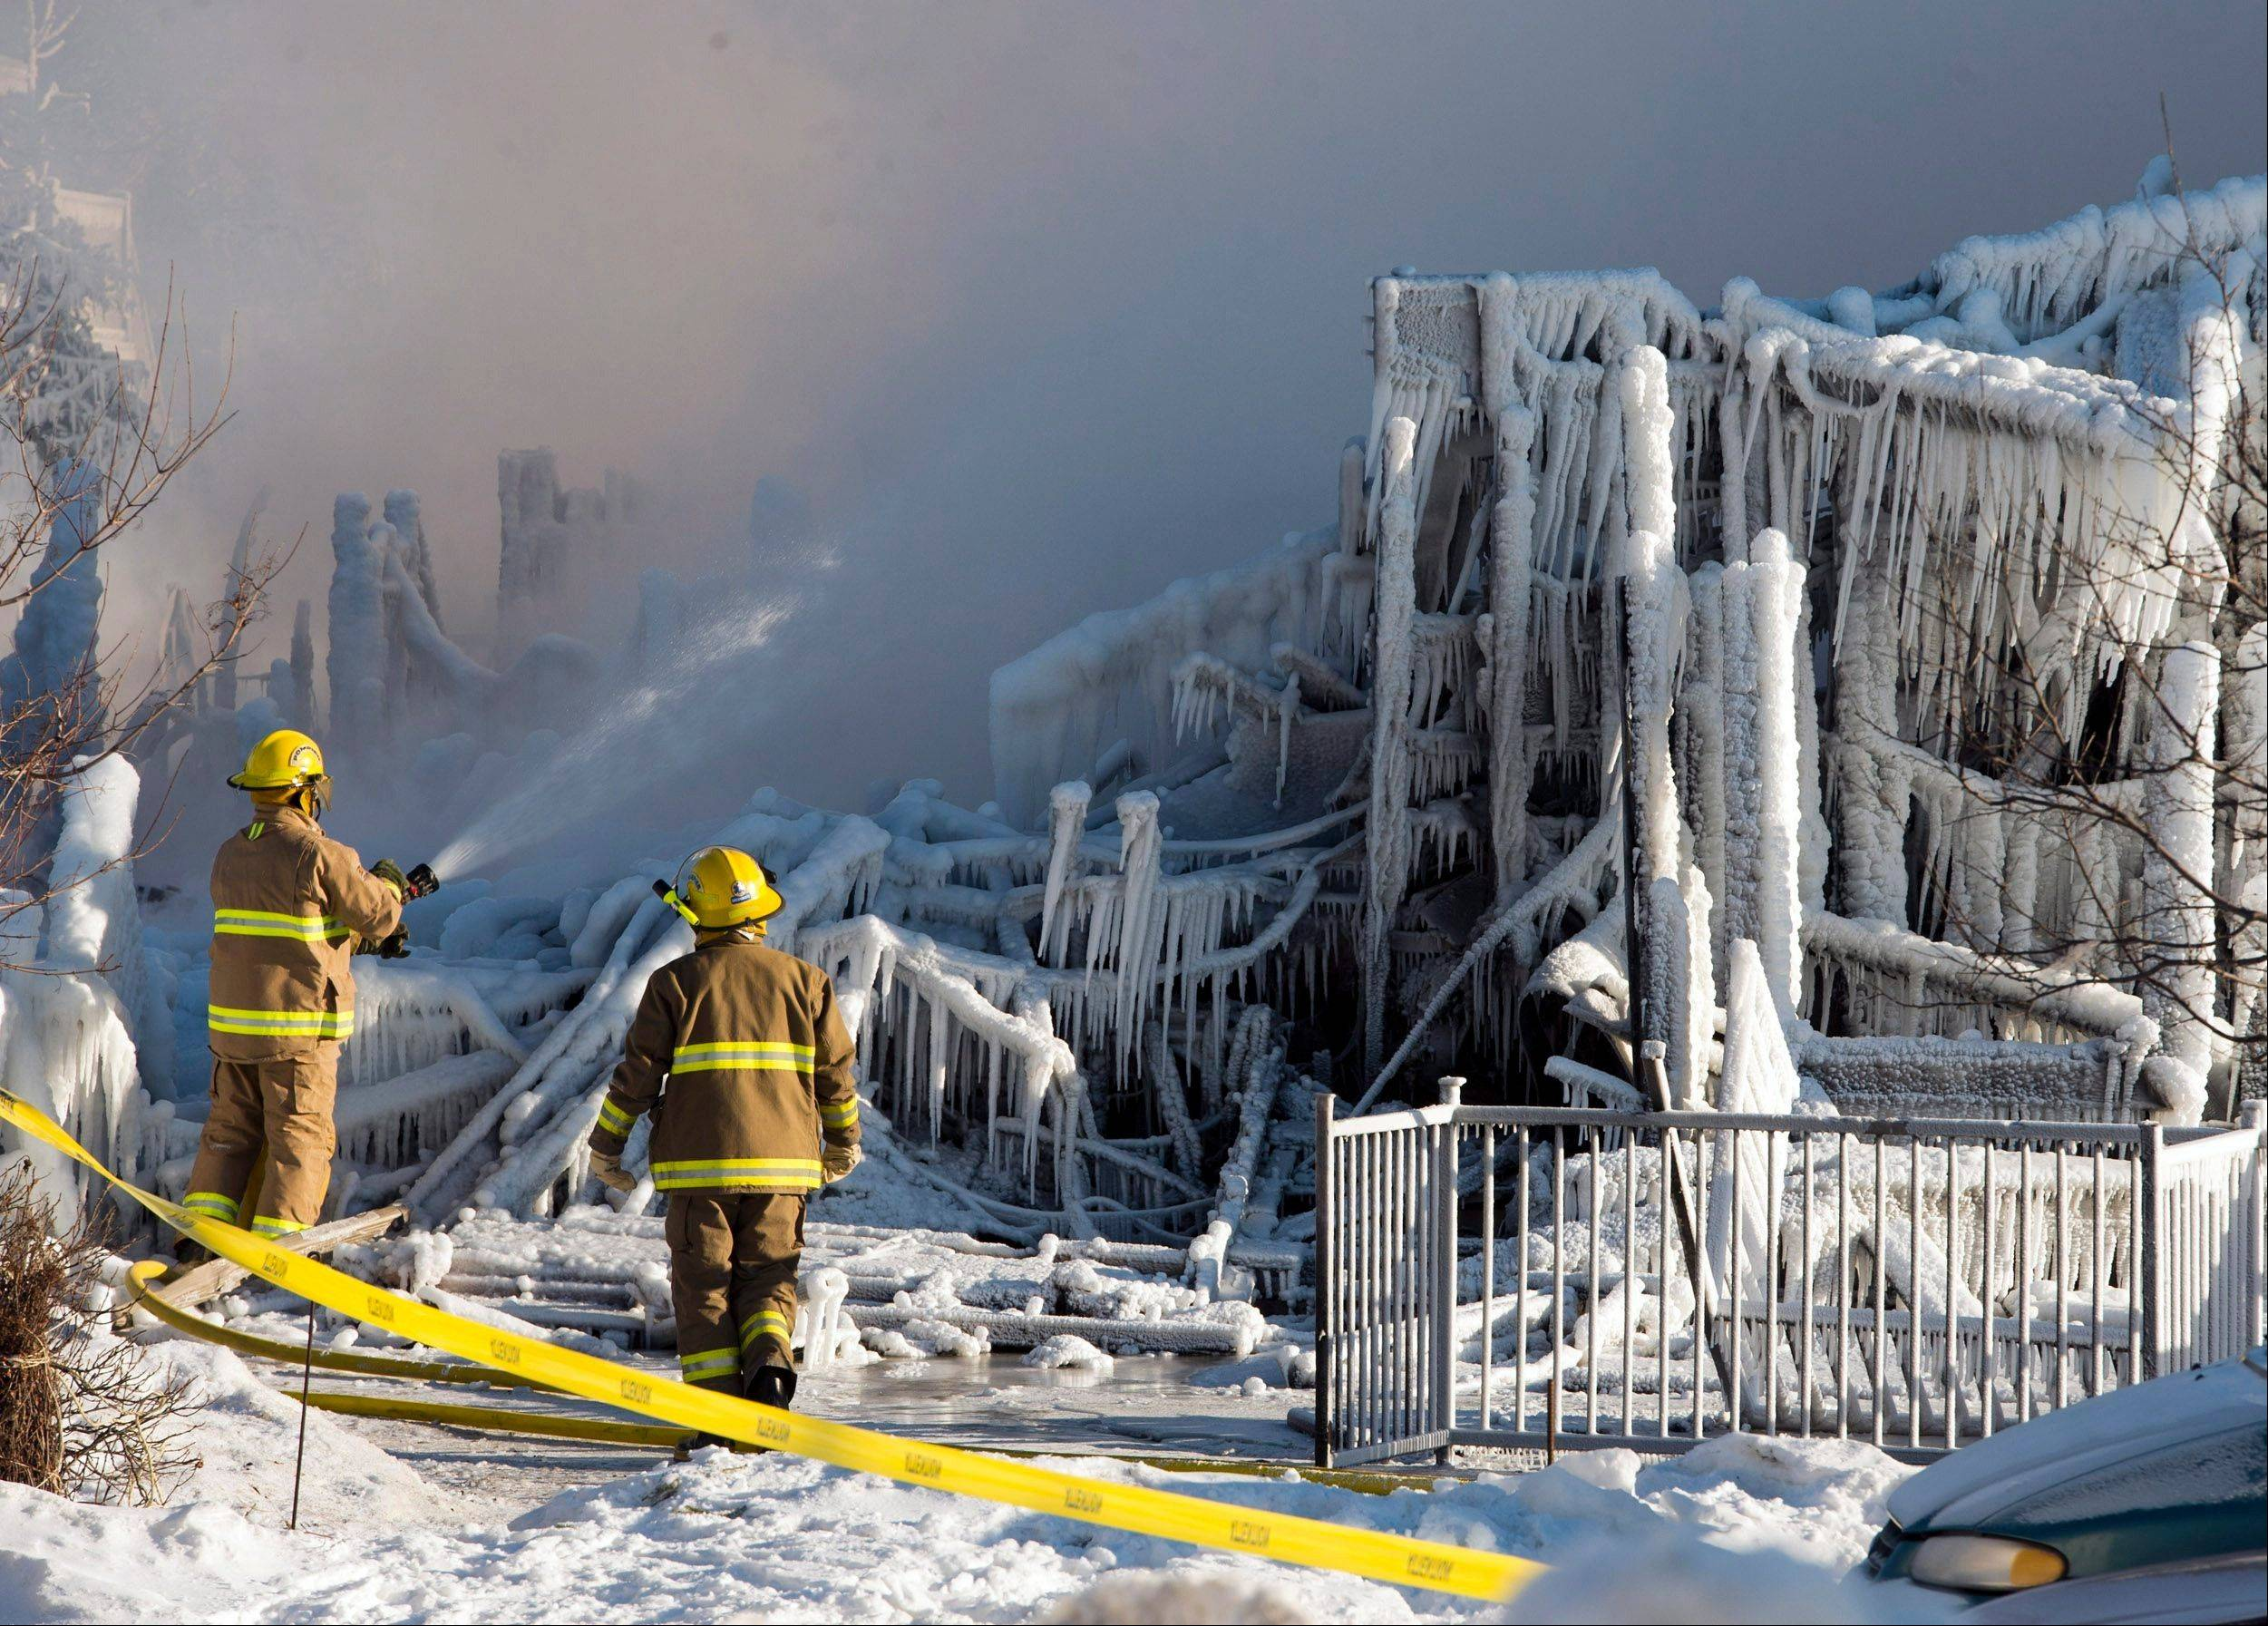 Firefighters continue to douse the rubble where fire destroyed a senior residence leaving at least five people dead and 30 unaccounted for in L�Isle-Verte, Que., Thursday, Jan. 23, 2014 The fire trapped terrified residents, most of them dependent on wheelchairs and walkers.